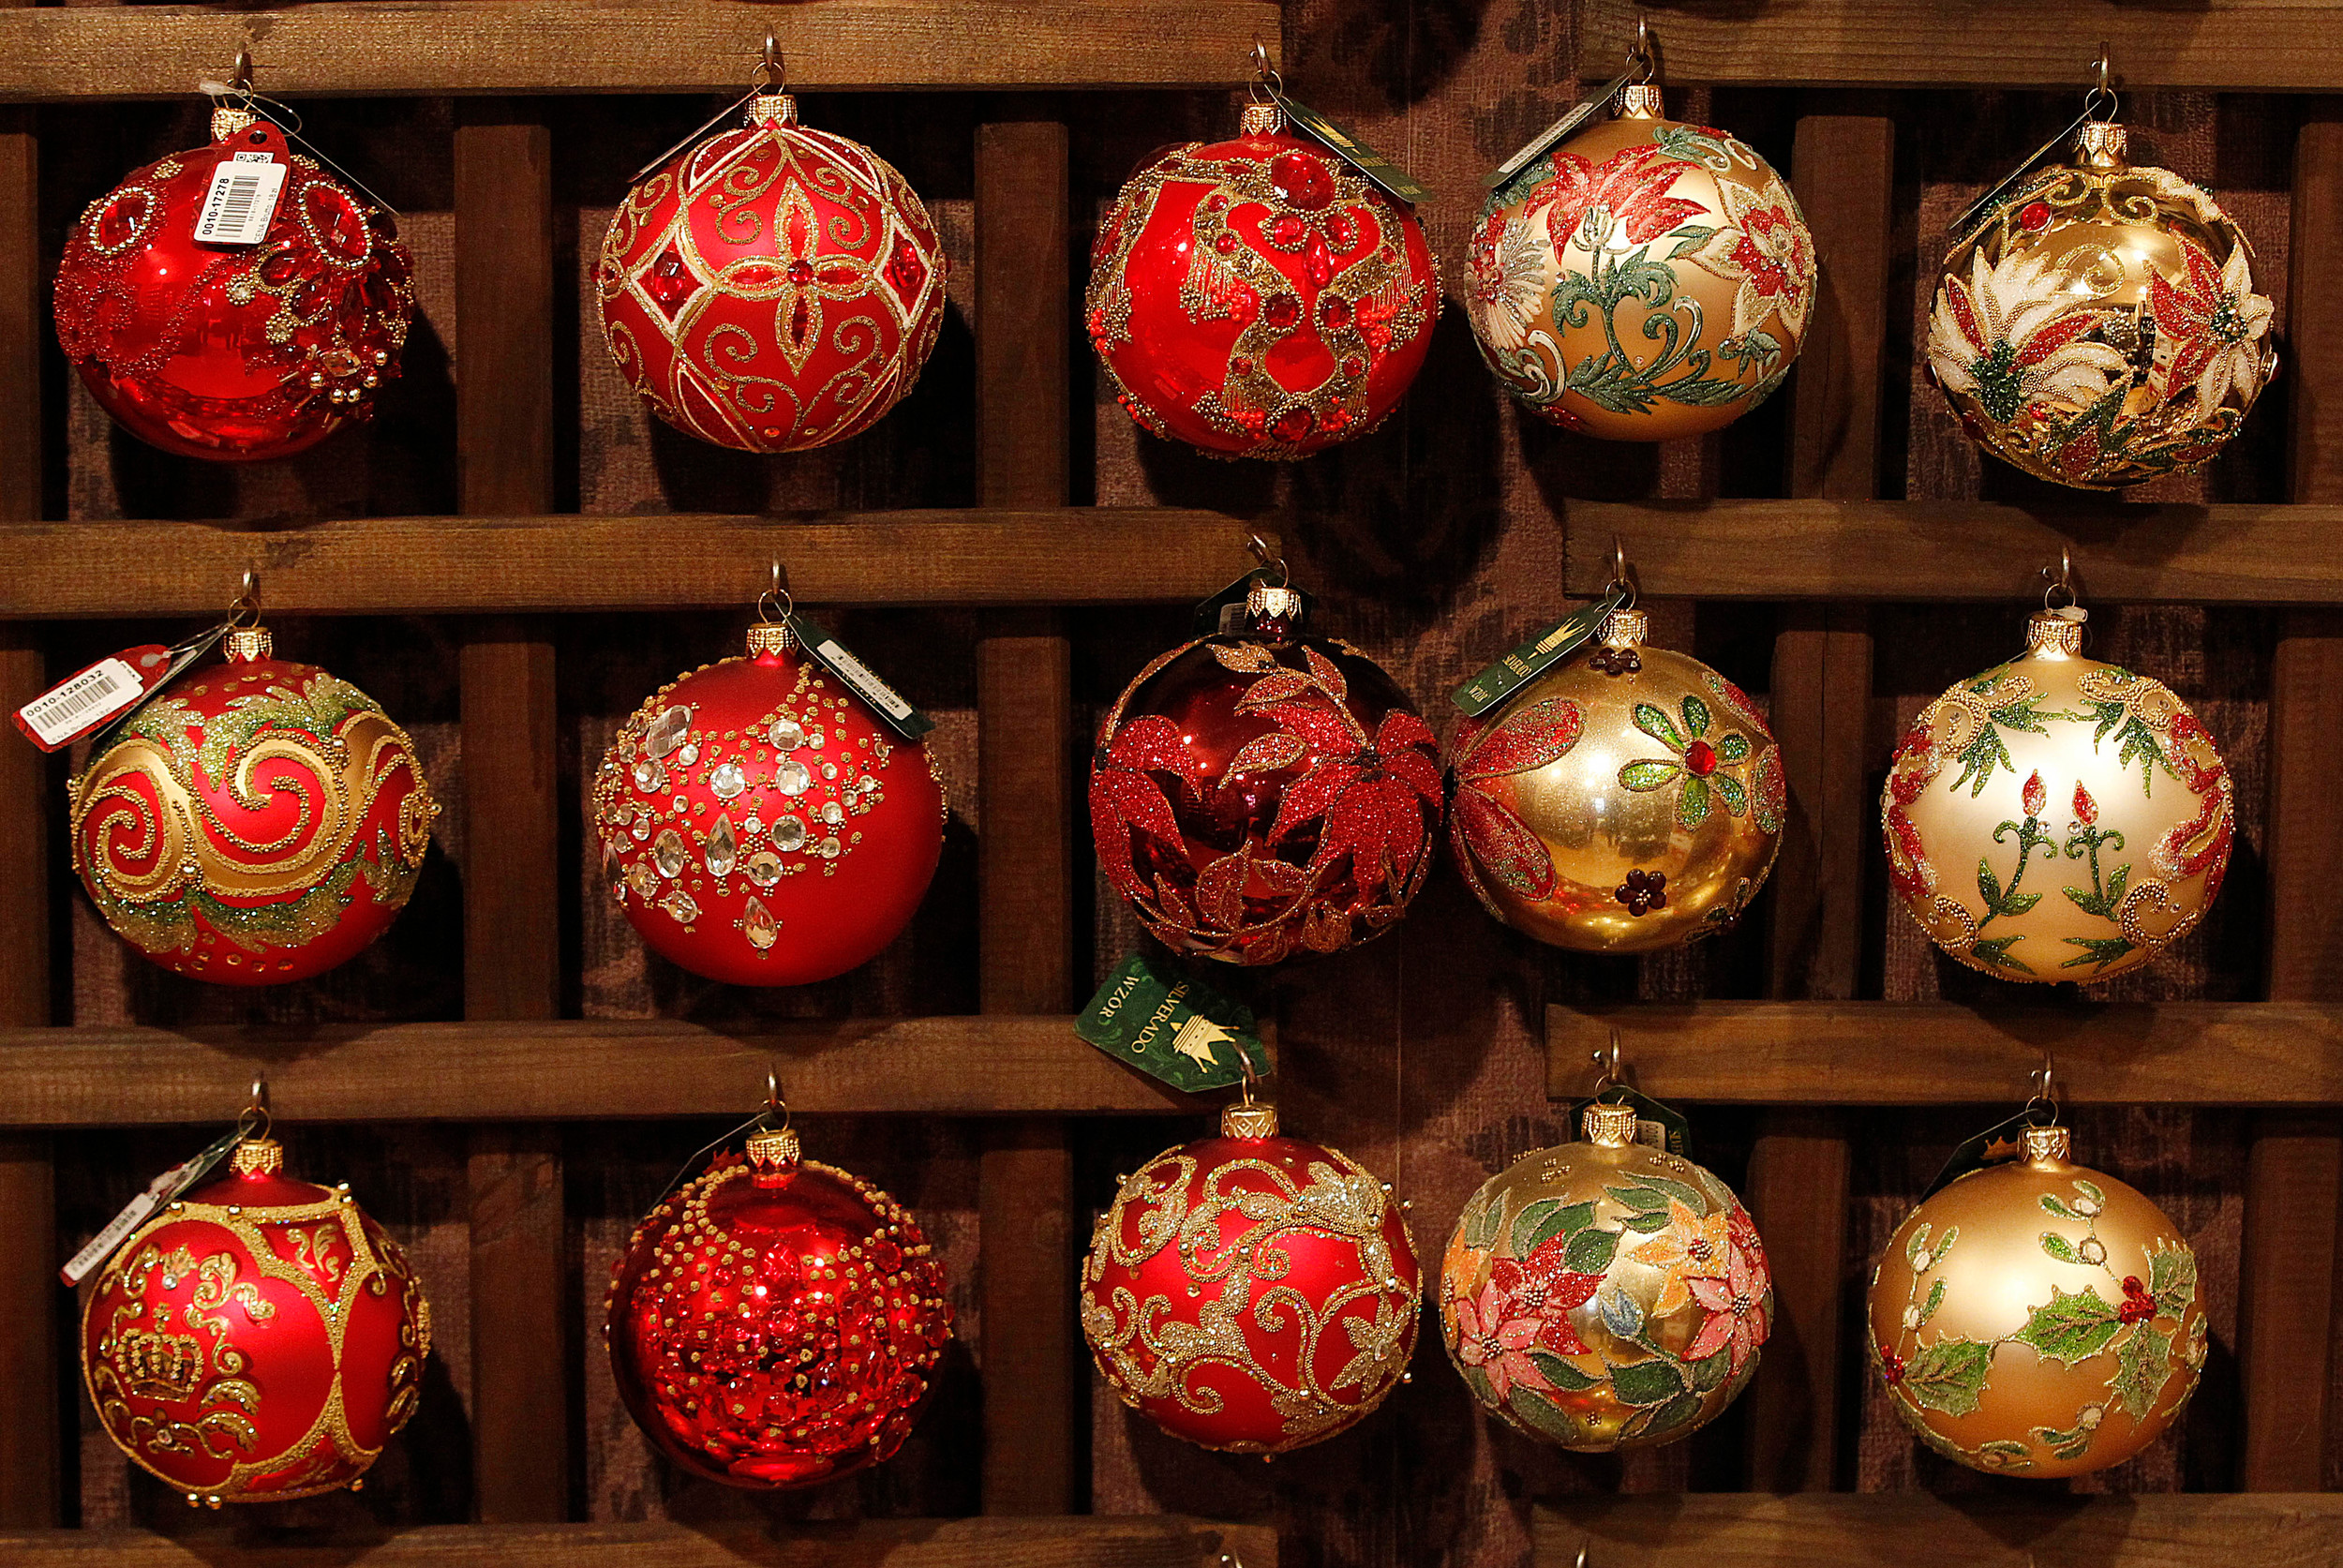 Whitehouse 2017 Christmas Decorations >> Polish firm makes glass ornaments | The Sumter Item